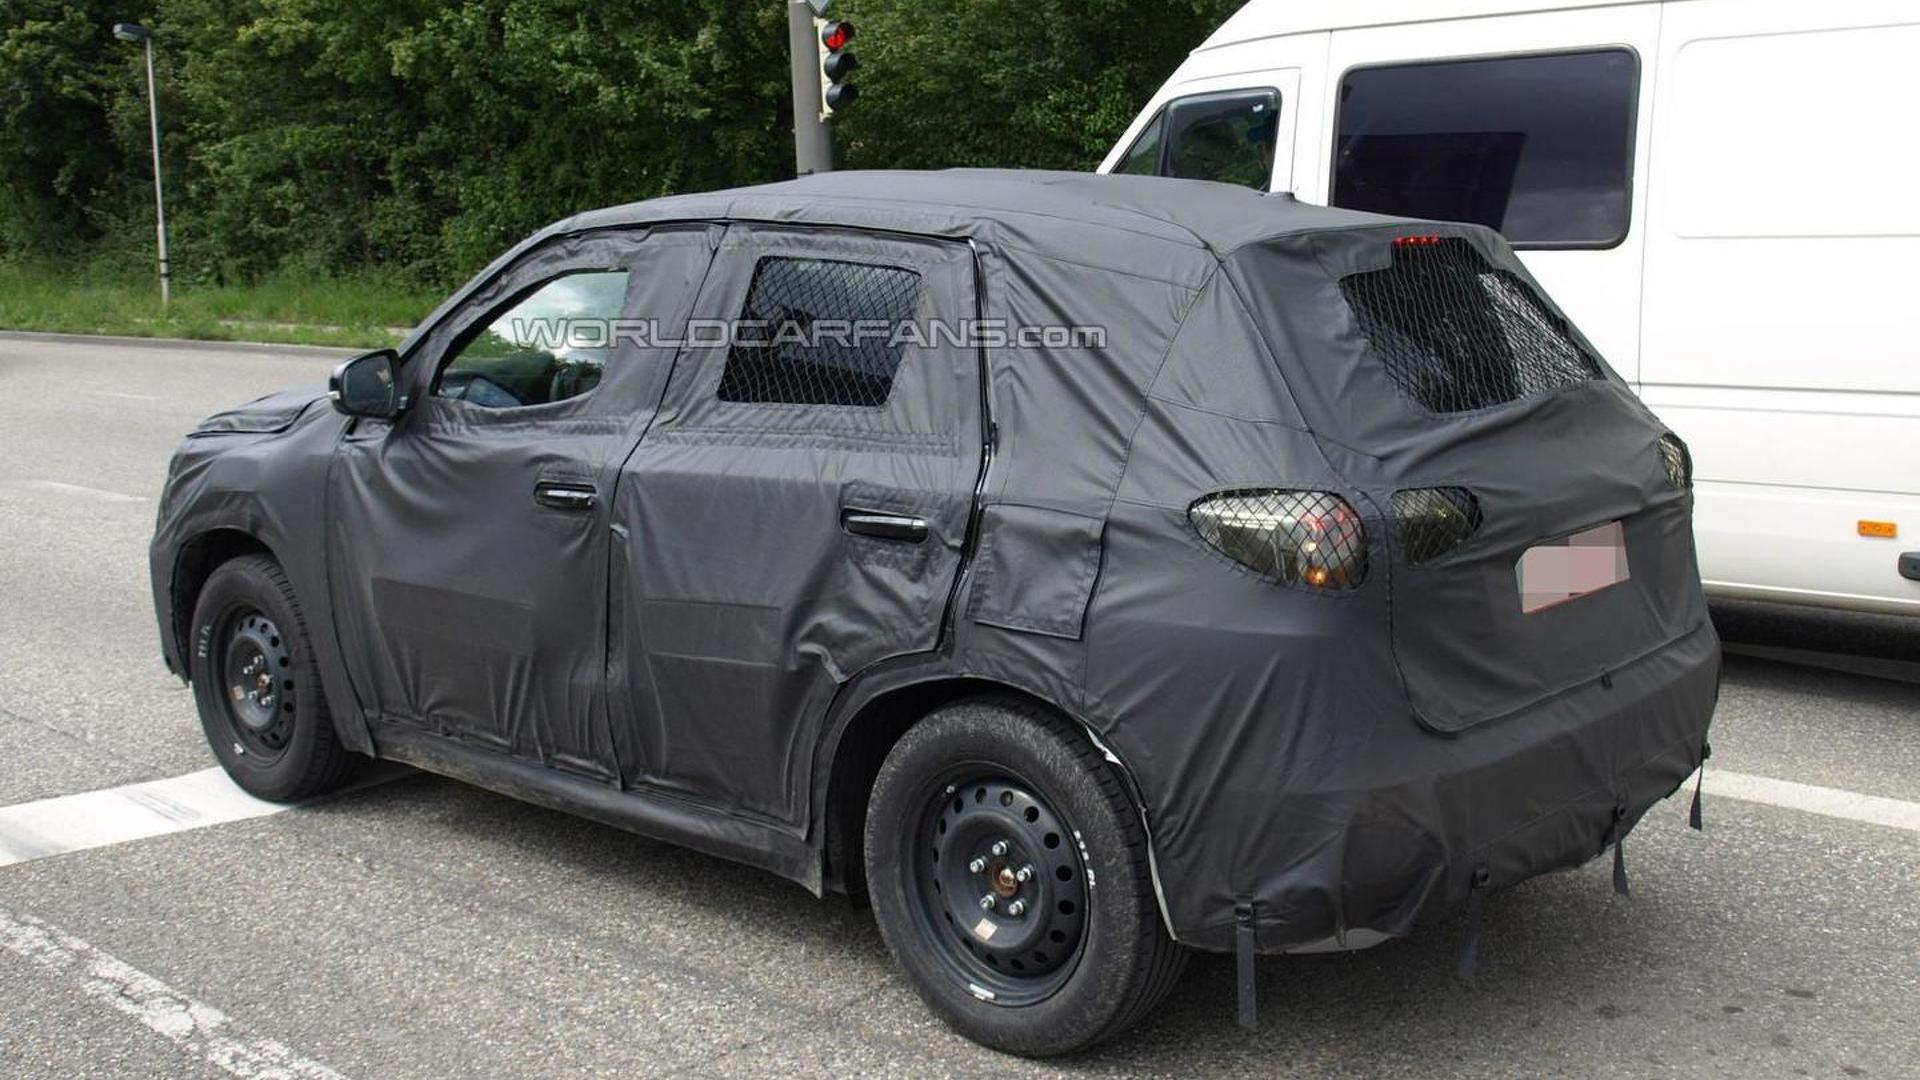 2015 suzuki grand vitara spied testing in germany. Black Bedroom Furniture Sets. Home Design Ideas